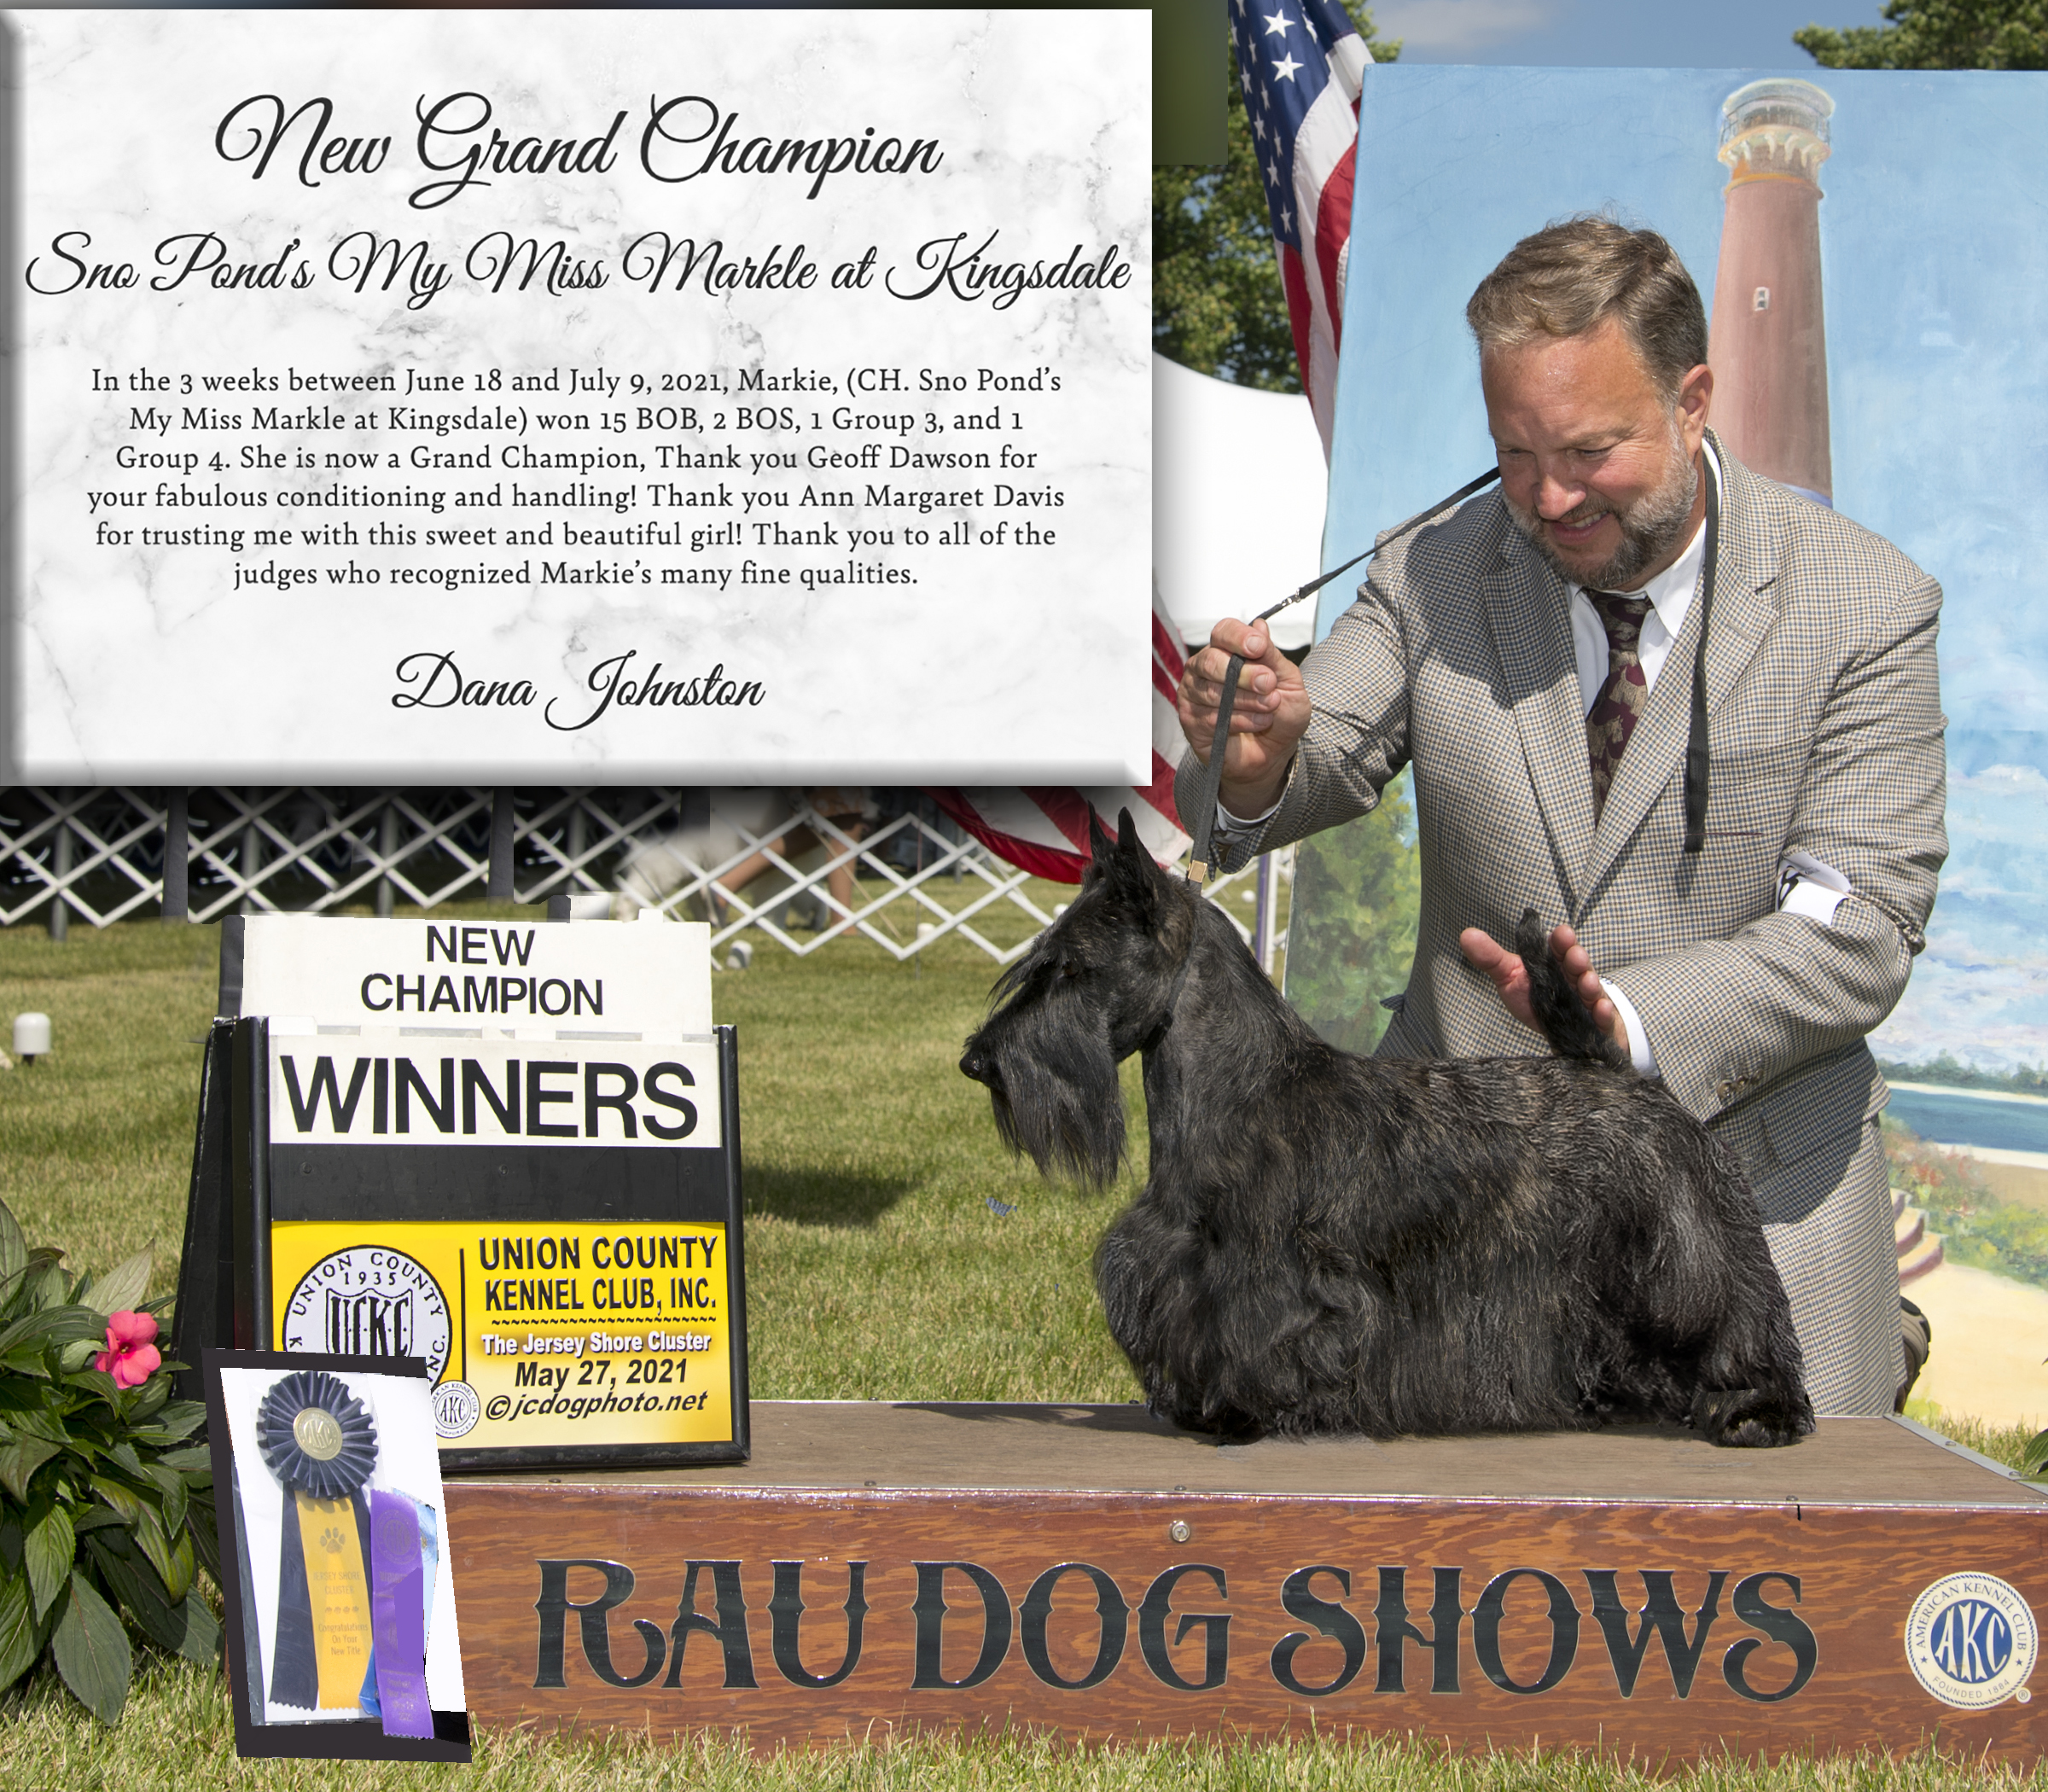 CH Sno Pond's My Miss Markle at Kingsdale is a new Grand Champion